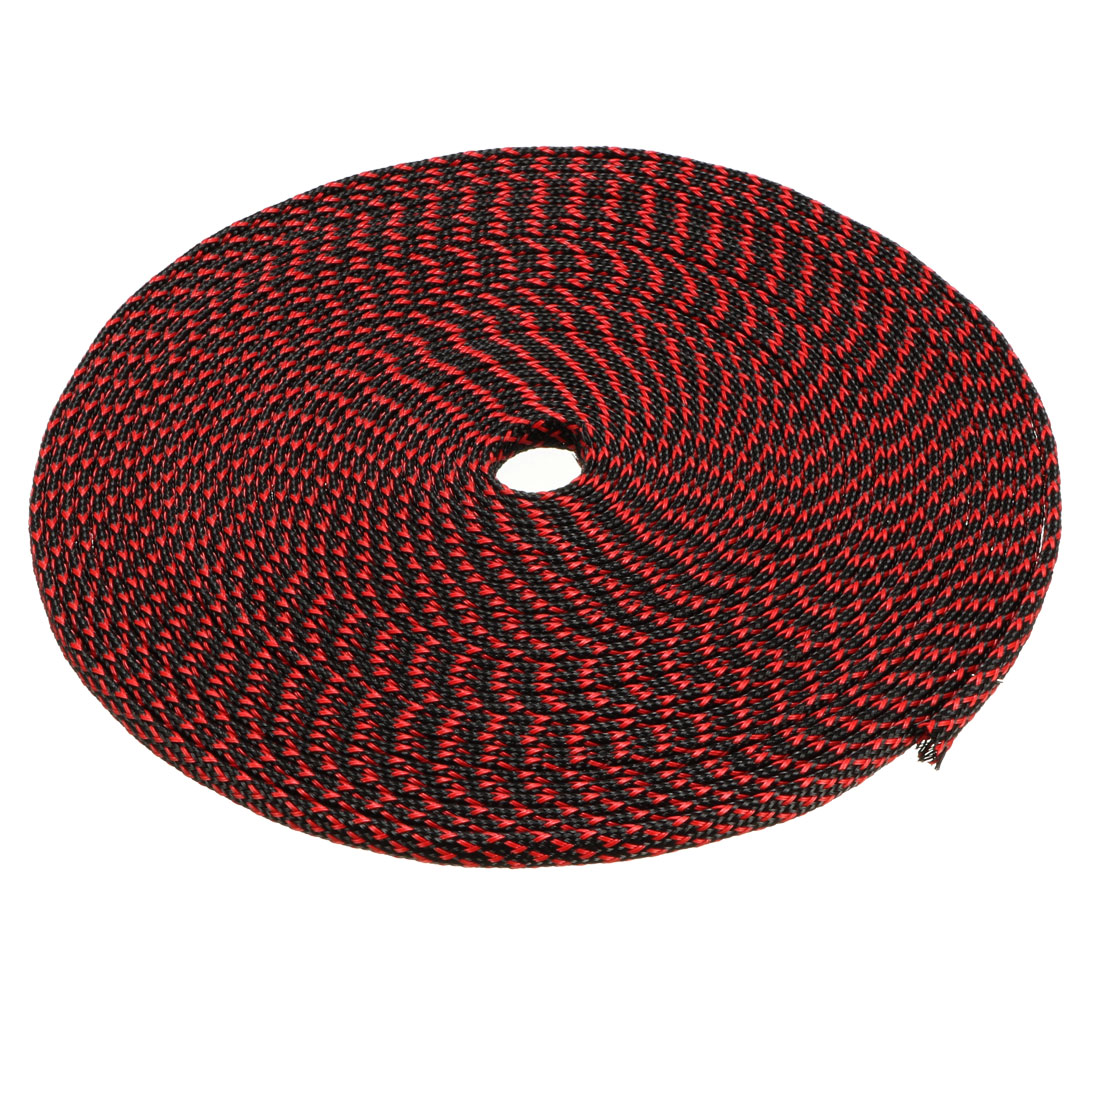 4mm PET Cable Wire Wrap Expandable Braided Sleeving Black Red 10M Length